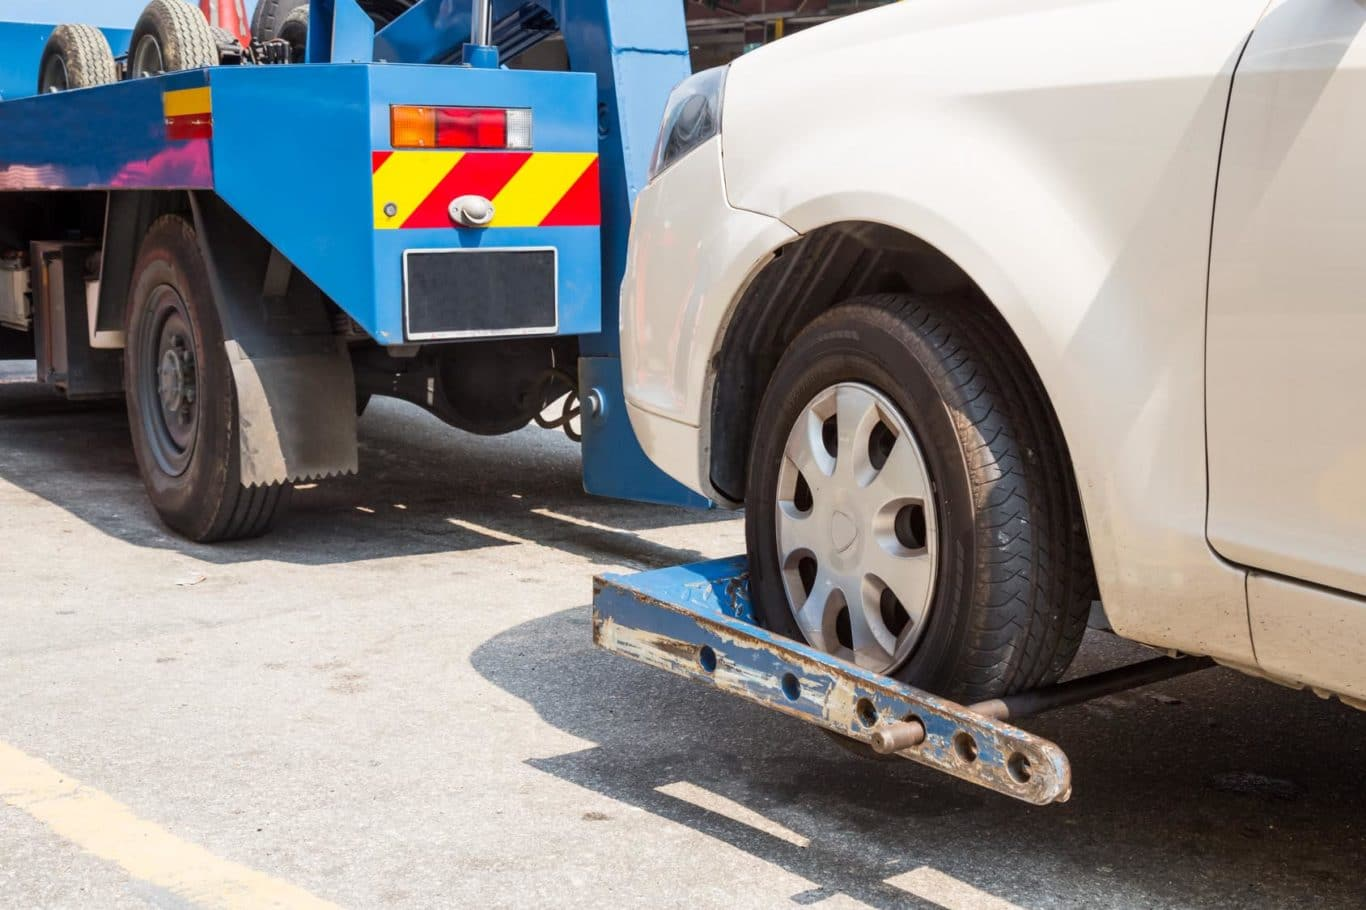 Clonskeagh expert Breakdown Recovery services